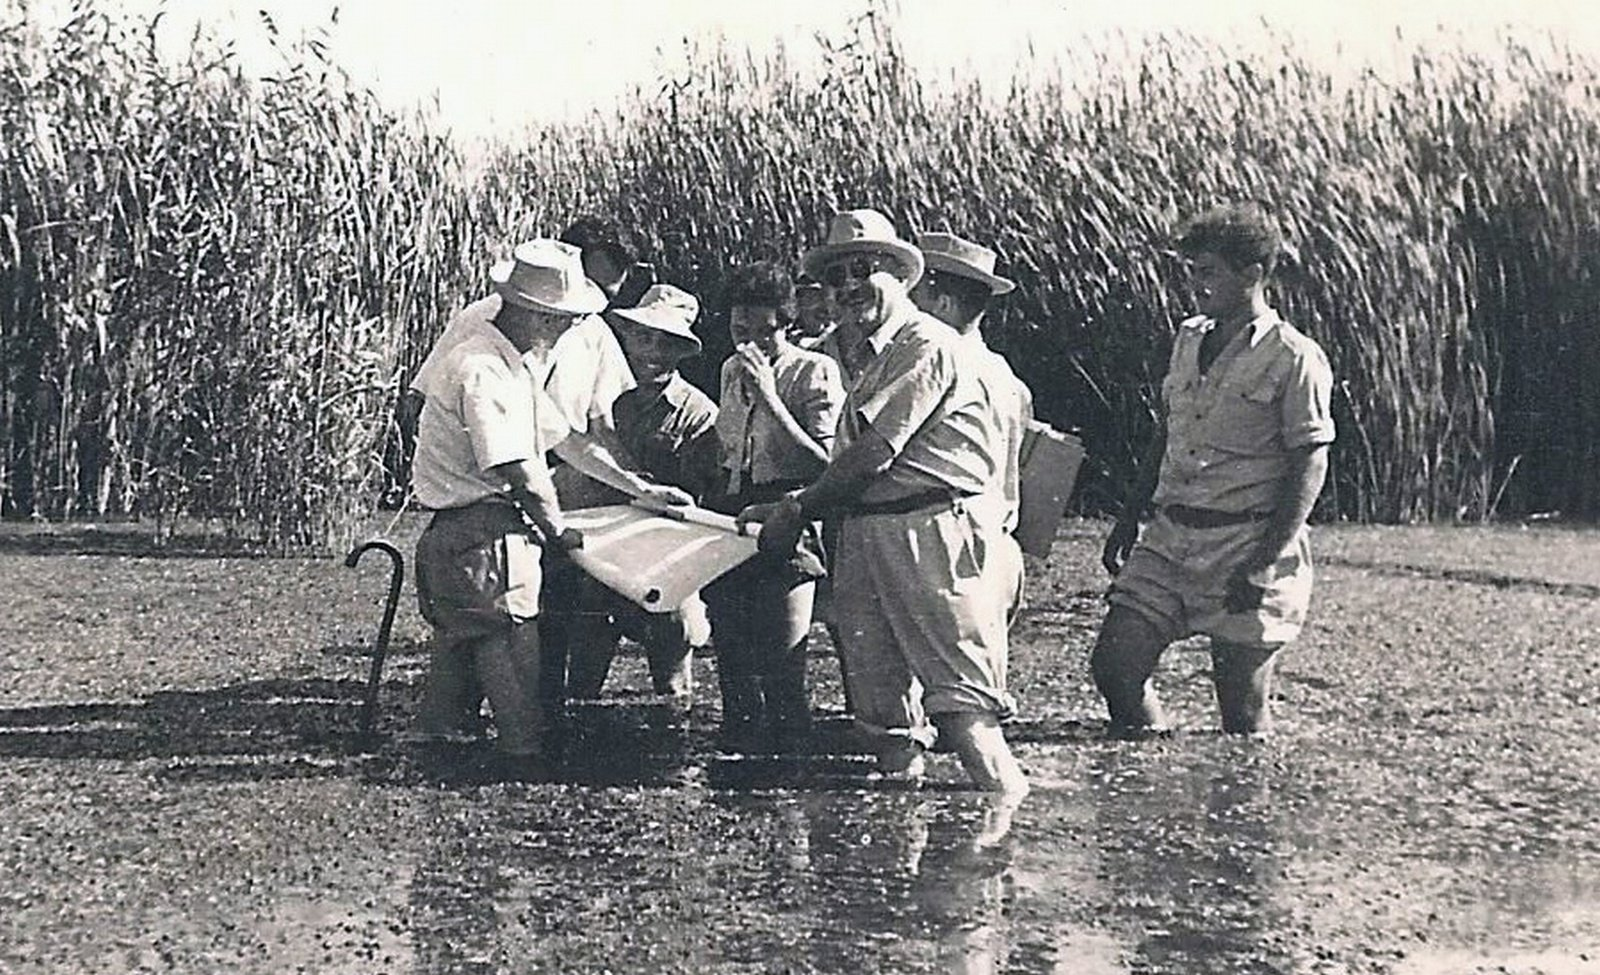 Marcel Janco visiting the Hula swamps, Palestine, 1938, Unknown photographer, Janco Archives, Tel Aviv, Copyright Not Evaluated